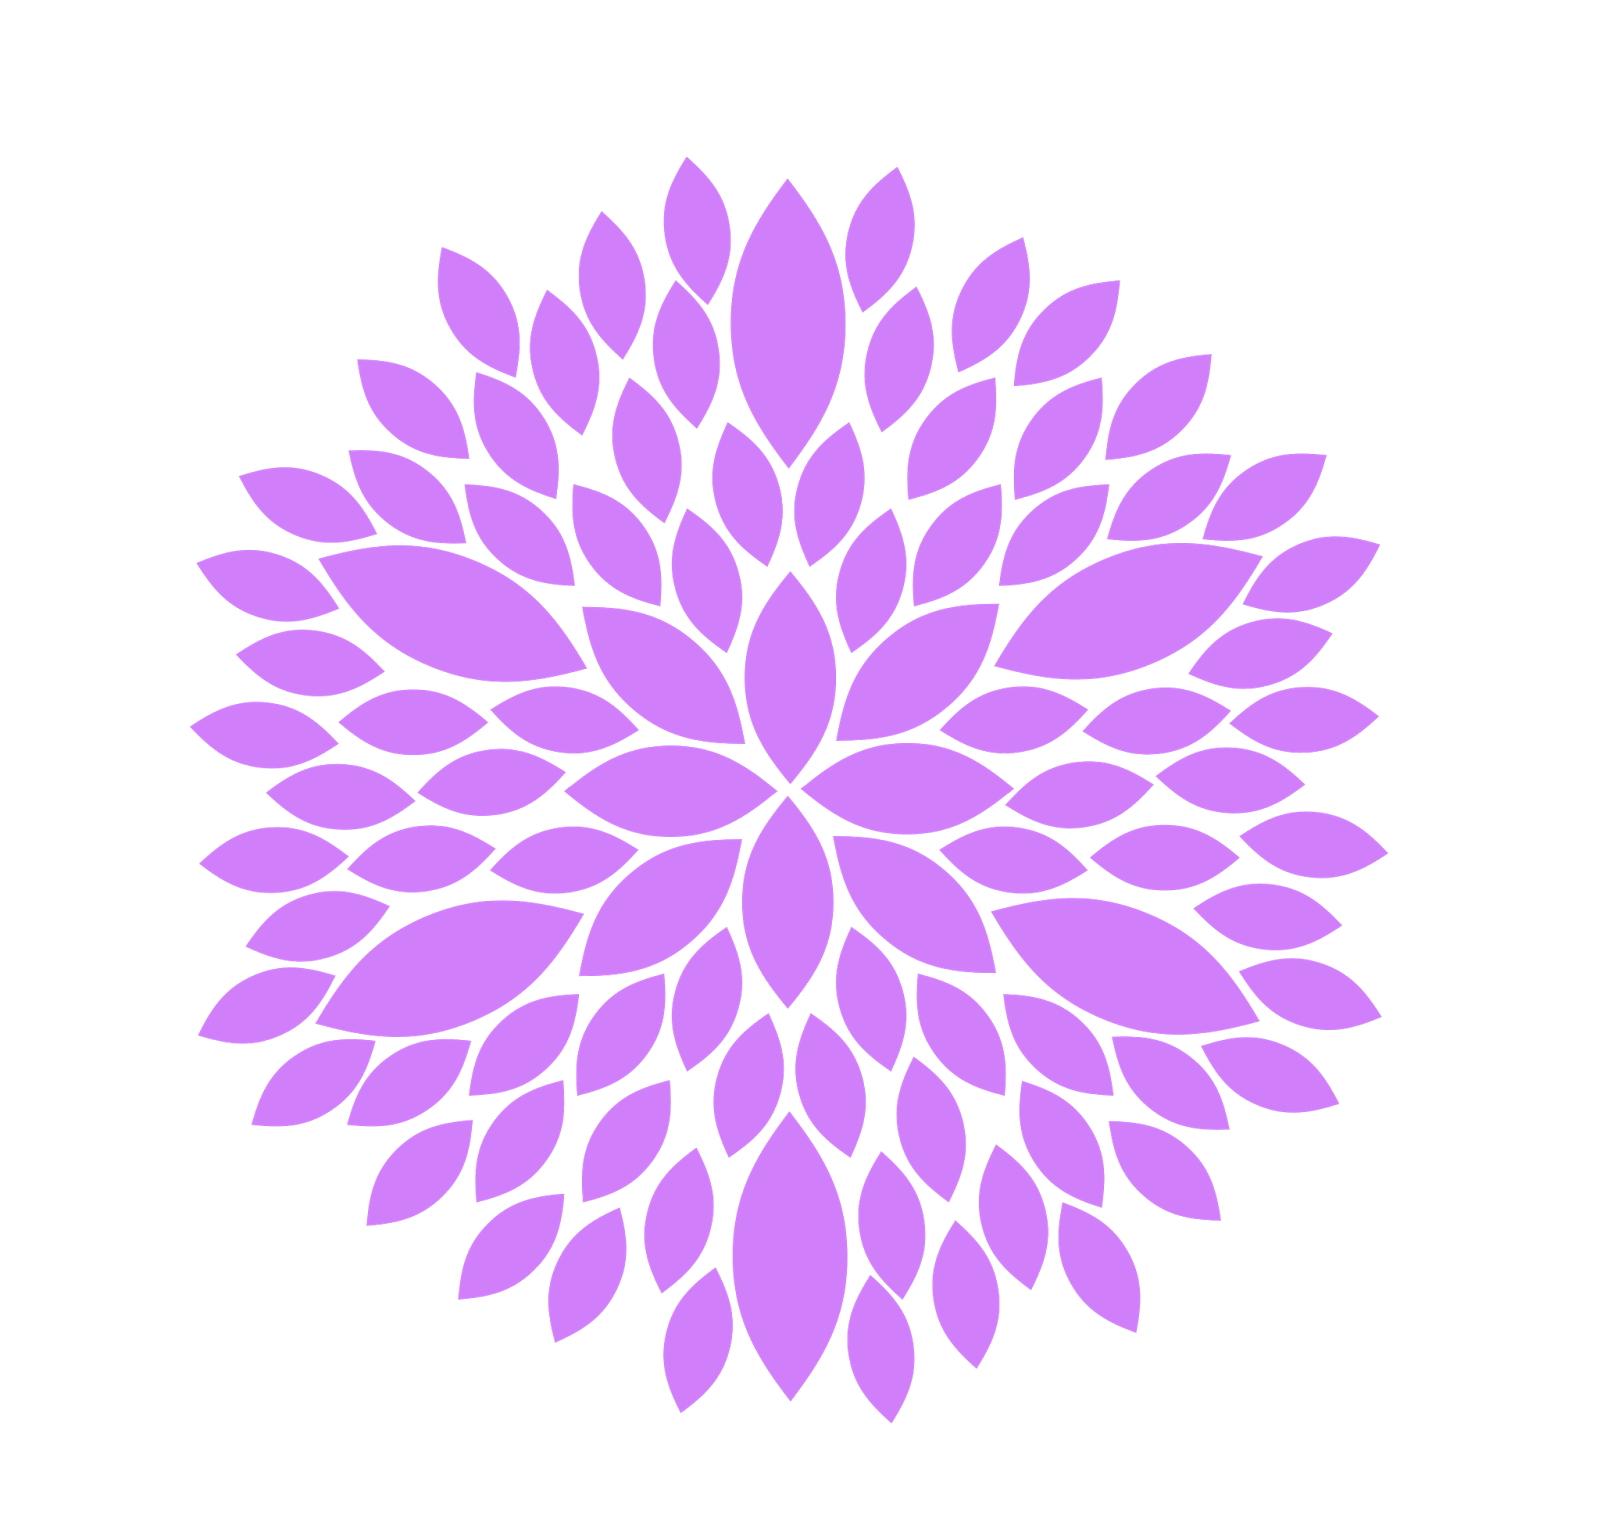 Purple Flower Clip Art | Free Images at Clker.com - vector ...